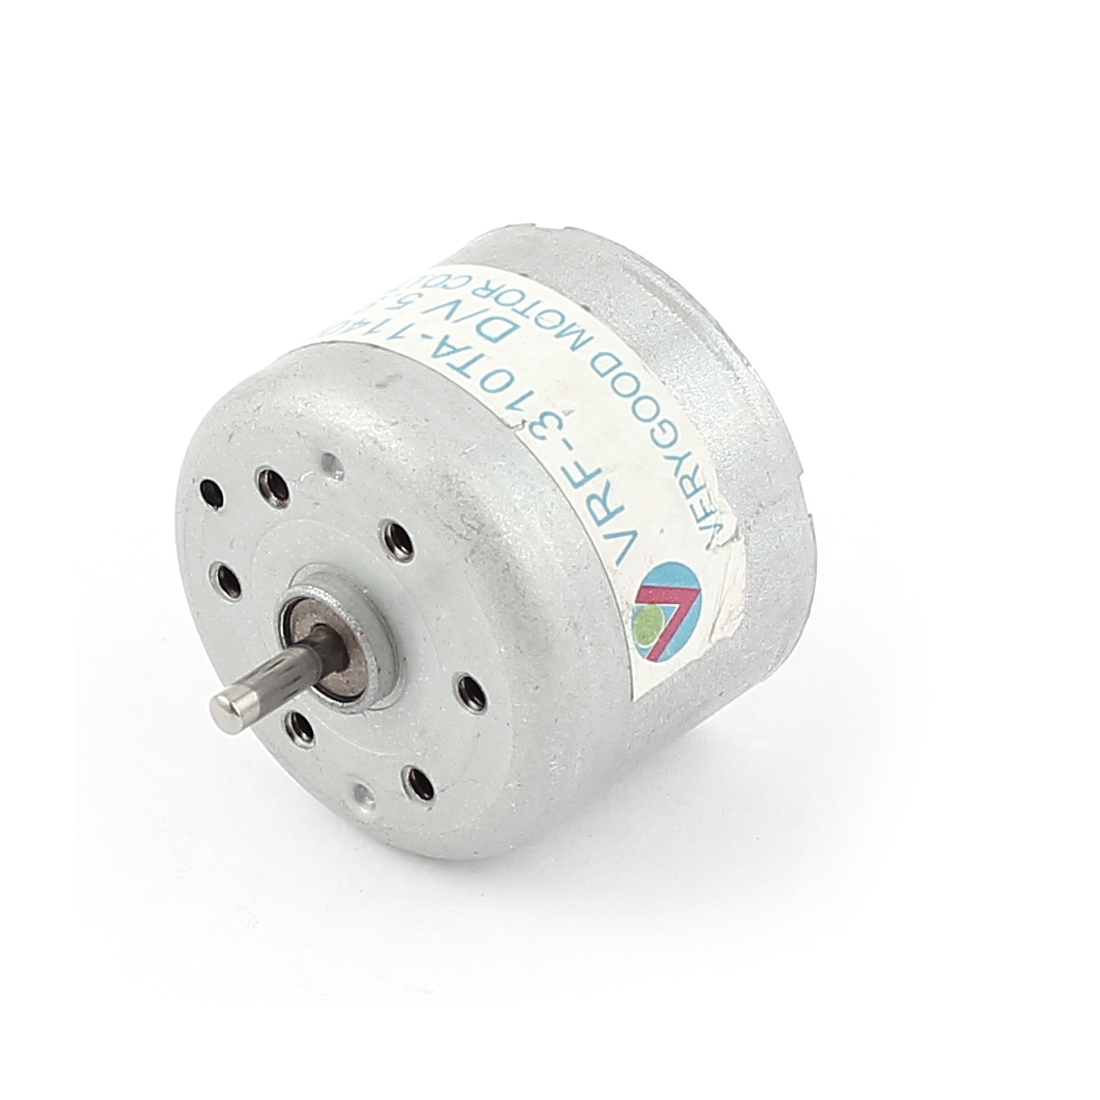 1500RPM 3-6V High Torque Cylinder Electric Mini Micro Vibration DC Motor